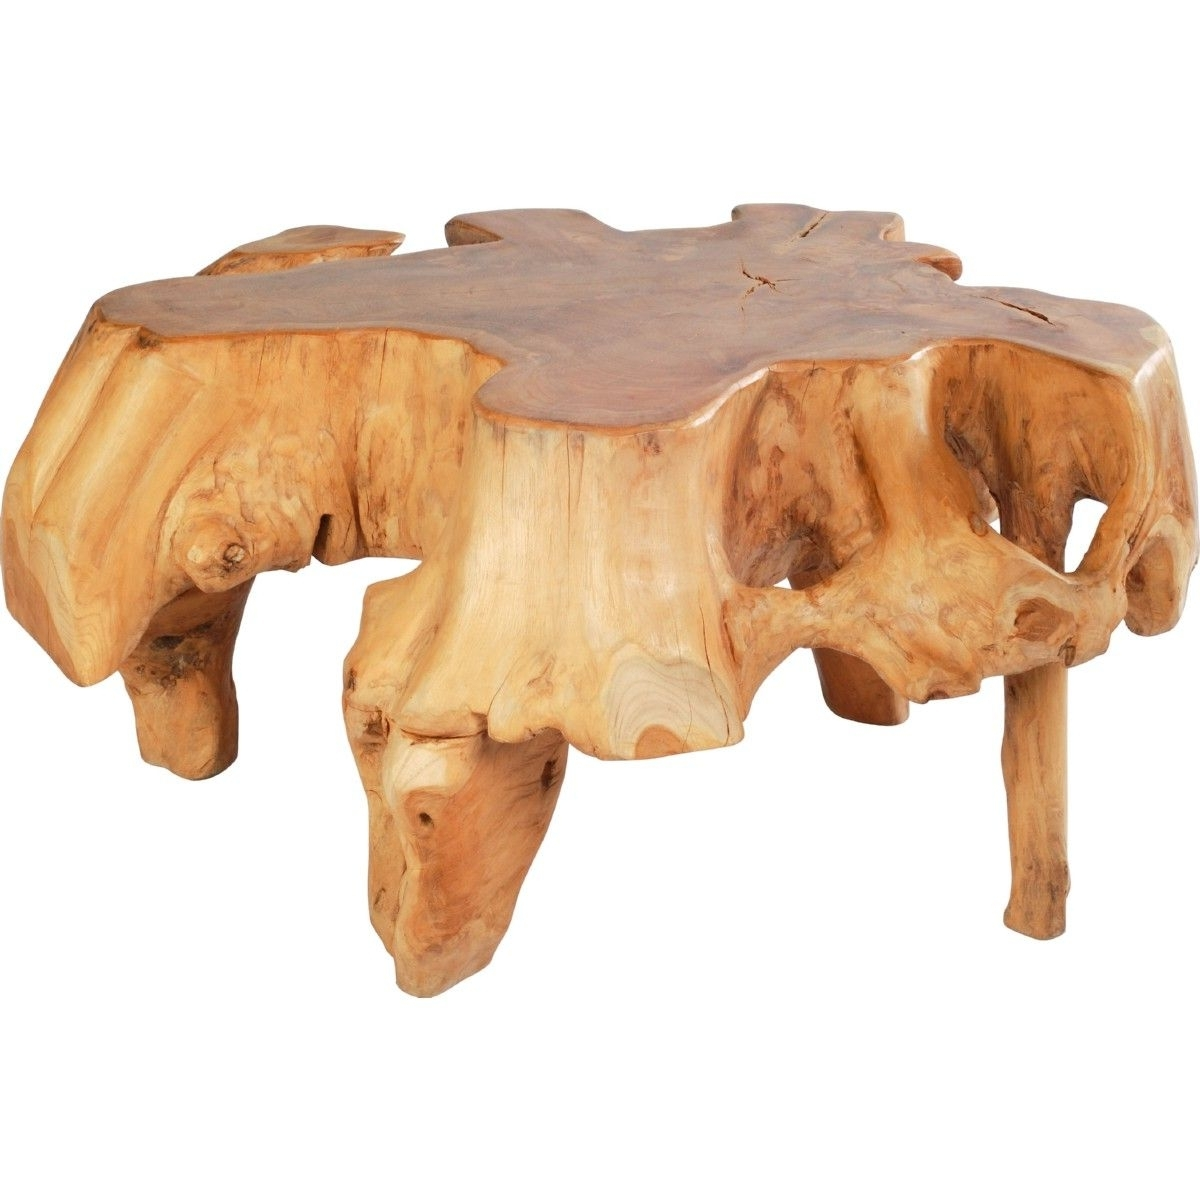 Zuo Modern Broll Coffee Table Organic Shape Teak Acrylic Gold Inside Widely Used Broll Coffee Tables (View 3 of 20)